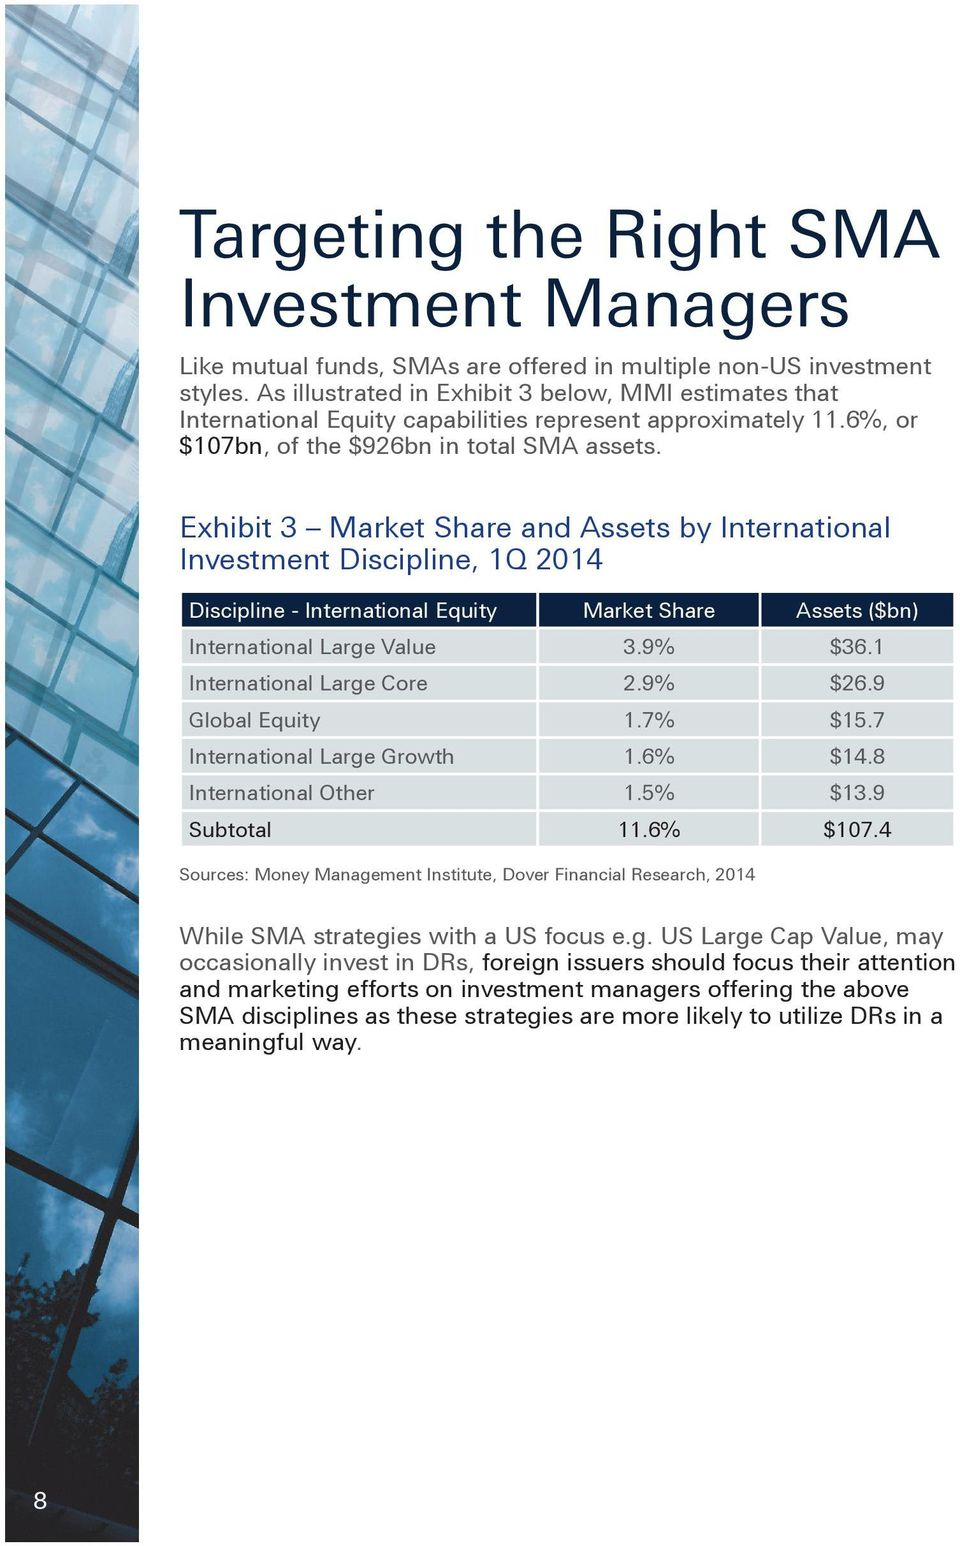 Exhibit 3 Market Share and Assets by International Investment Discipline, 1Q 2014 Discipline - International Equity Market Share Assets ($bn) International Large Value 3.9% $36.